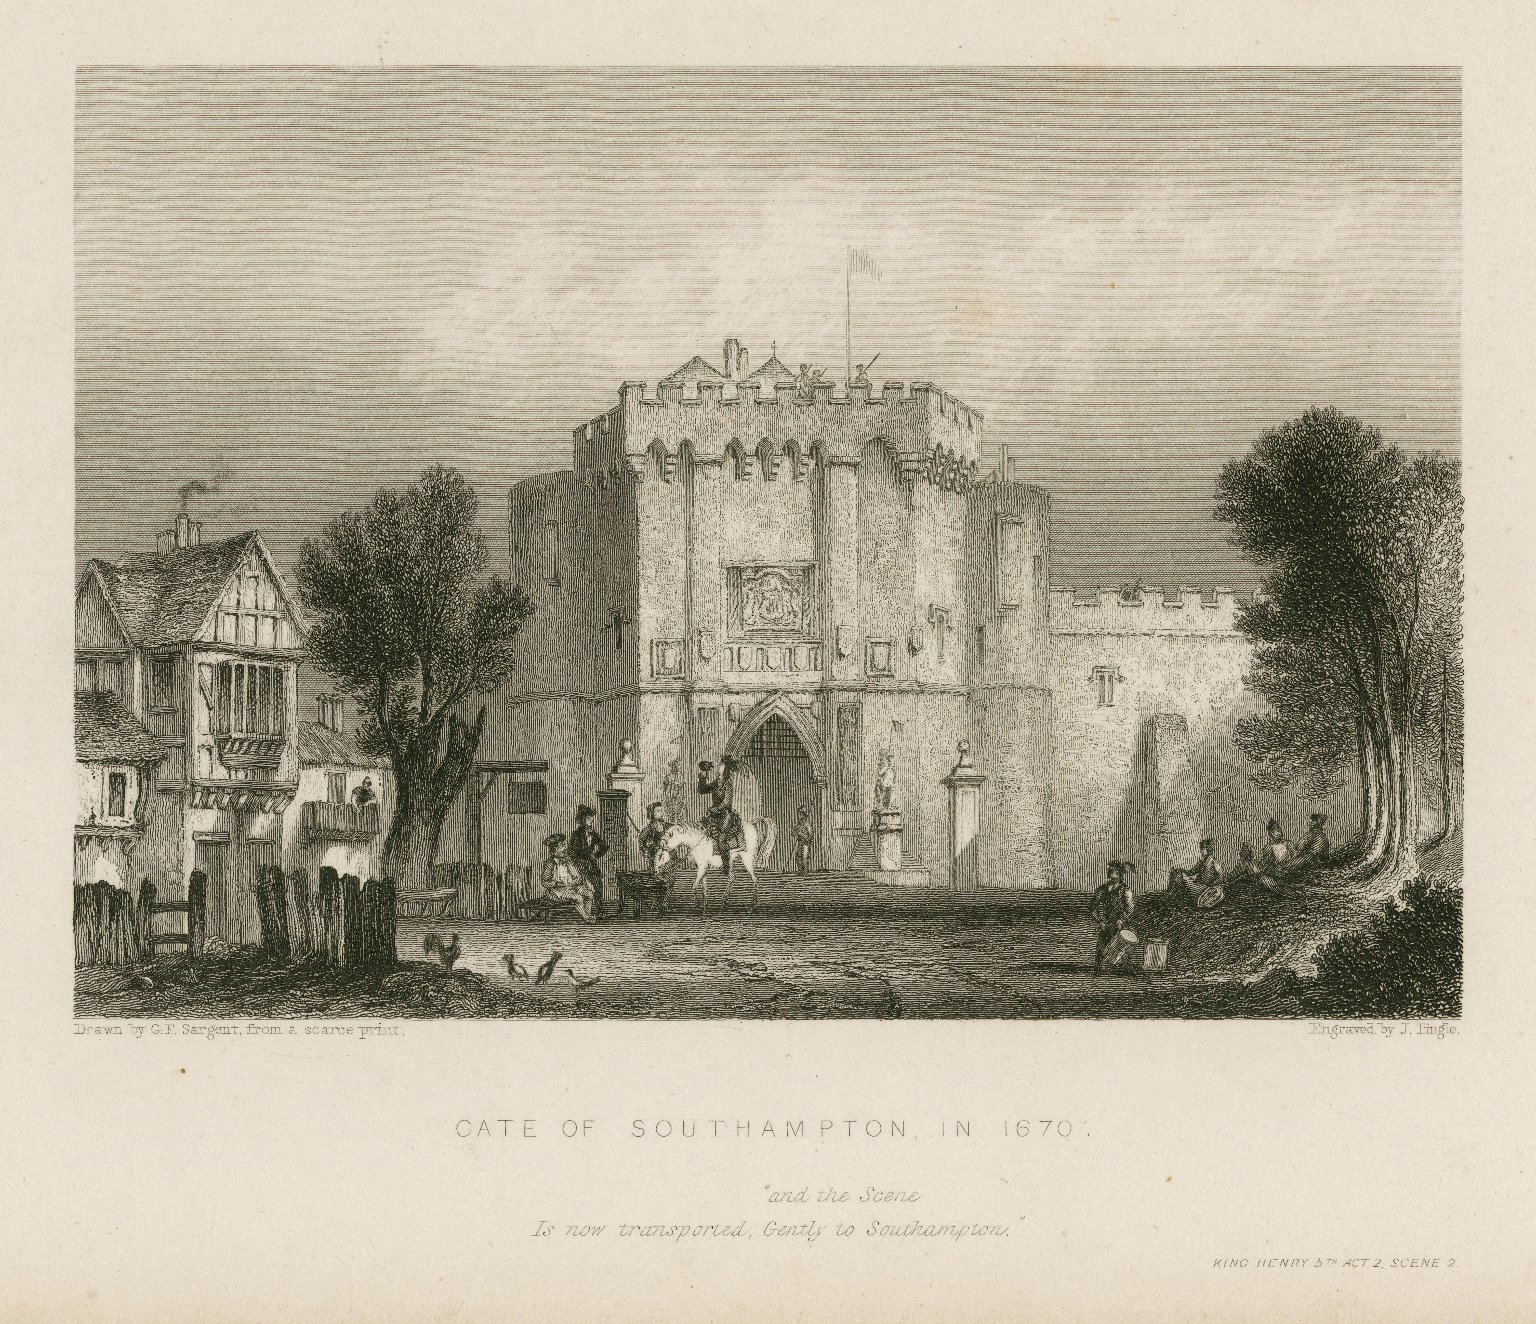 "Gate of Southampton in 1670, ""and the scene is now transported,"" King Henry 5th, act 2, scene 2 [graphic] / drawn by G.F. Sargent from a scarce print ; engraved by J. Tingle."